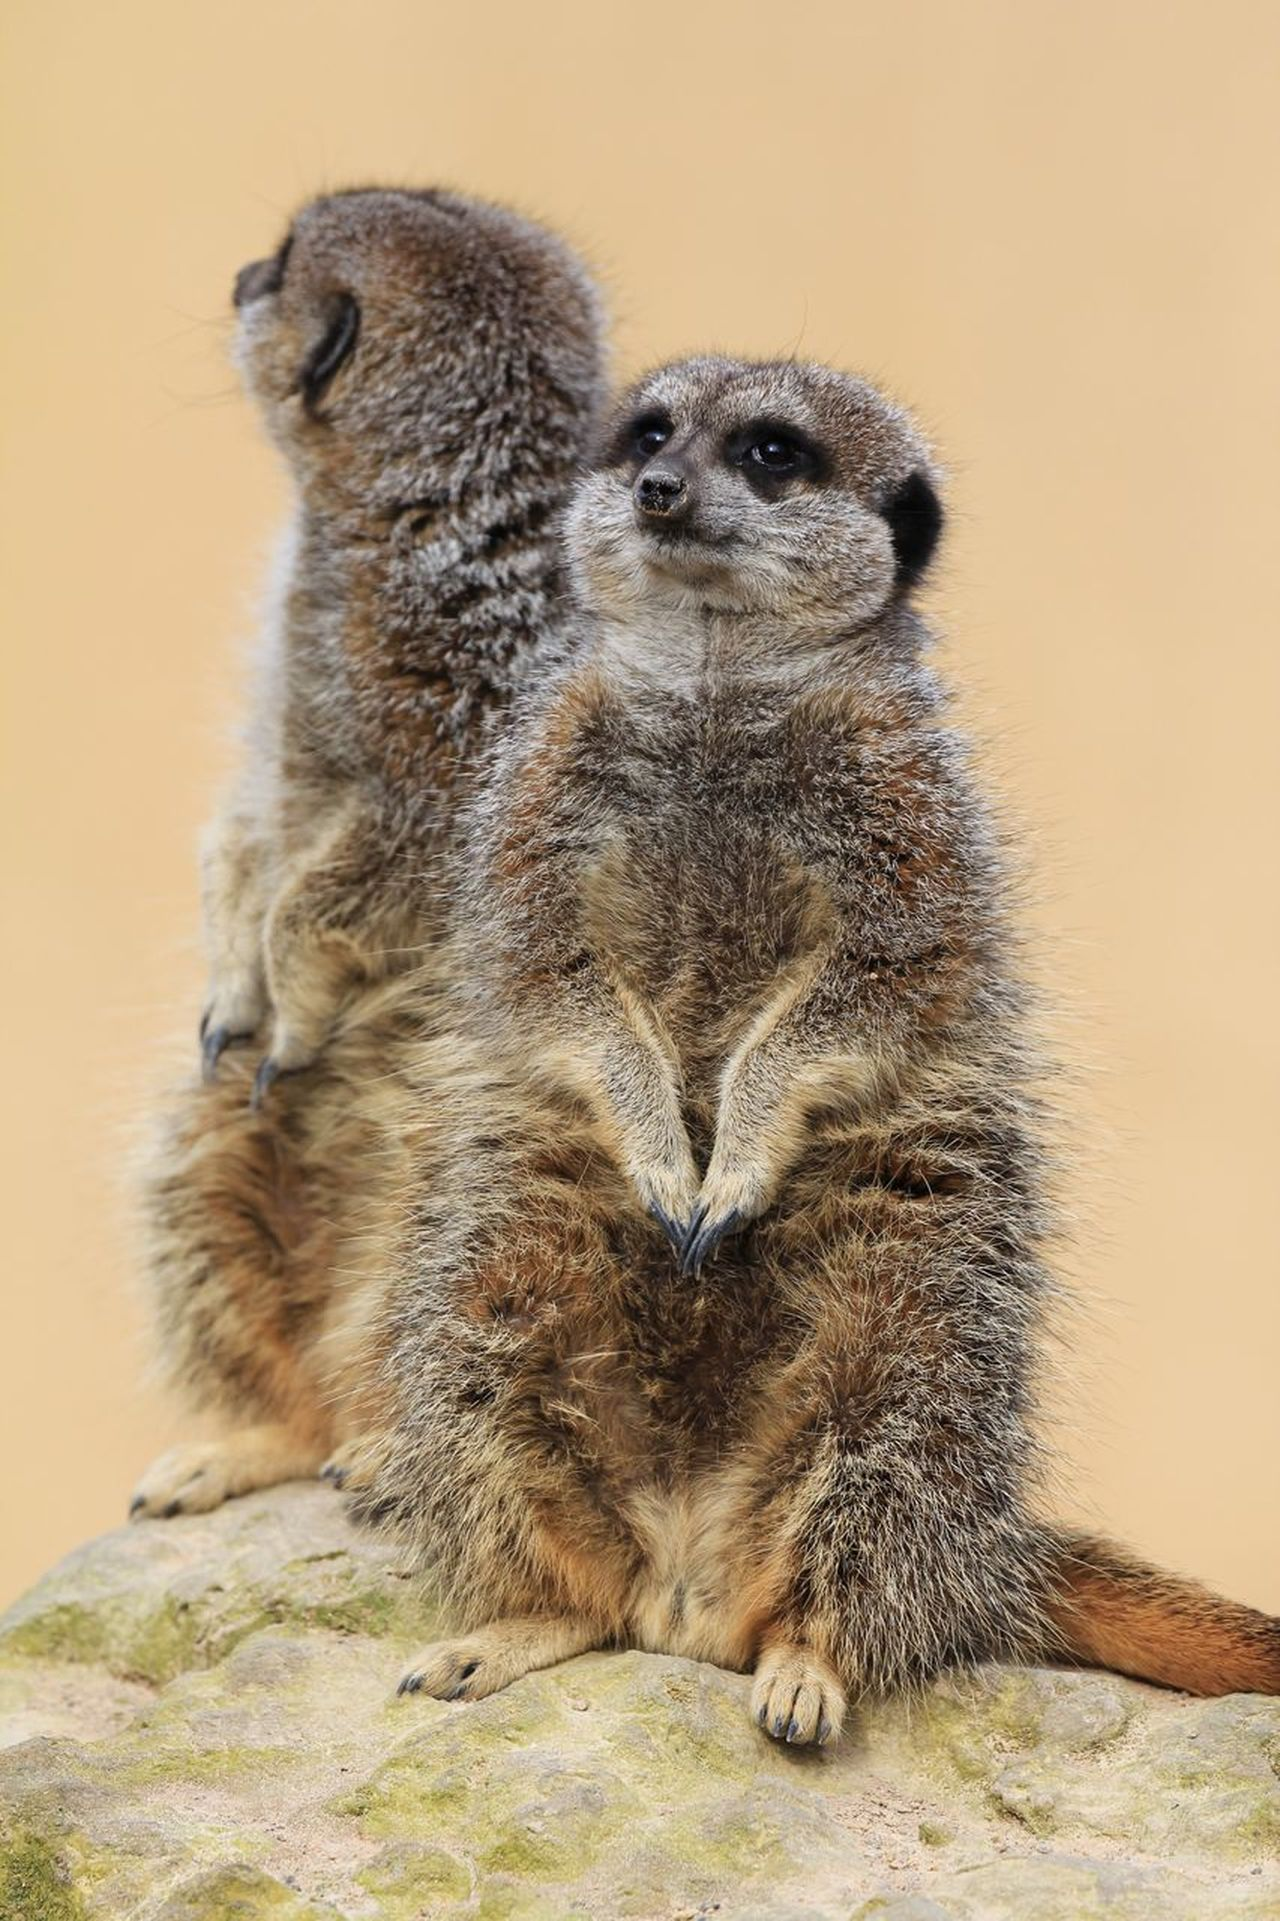 Animal Themes Animals In The Wild One Animal No People Mammal Animal Wildlife Close-up Nature Outdoors Day Meerkat Standing Wildlife Wildlife & Nature Fur Cute Nosy Sand EyeEm Best Shots Check This Out Portrait Couple Friends